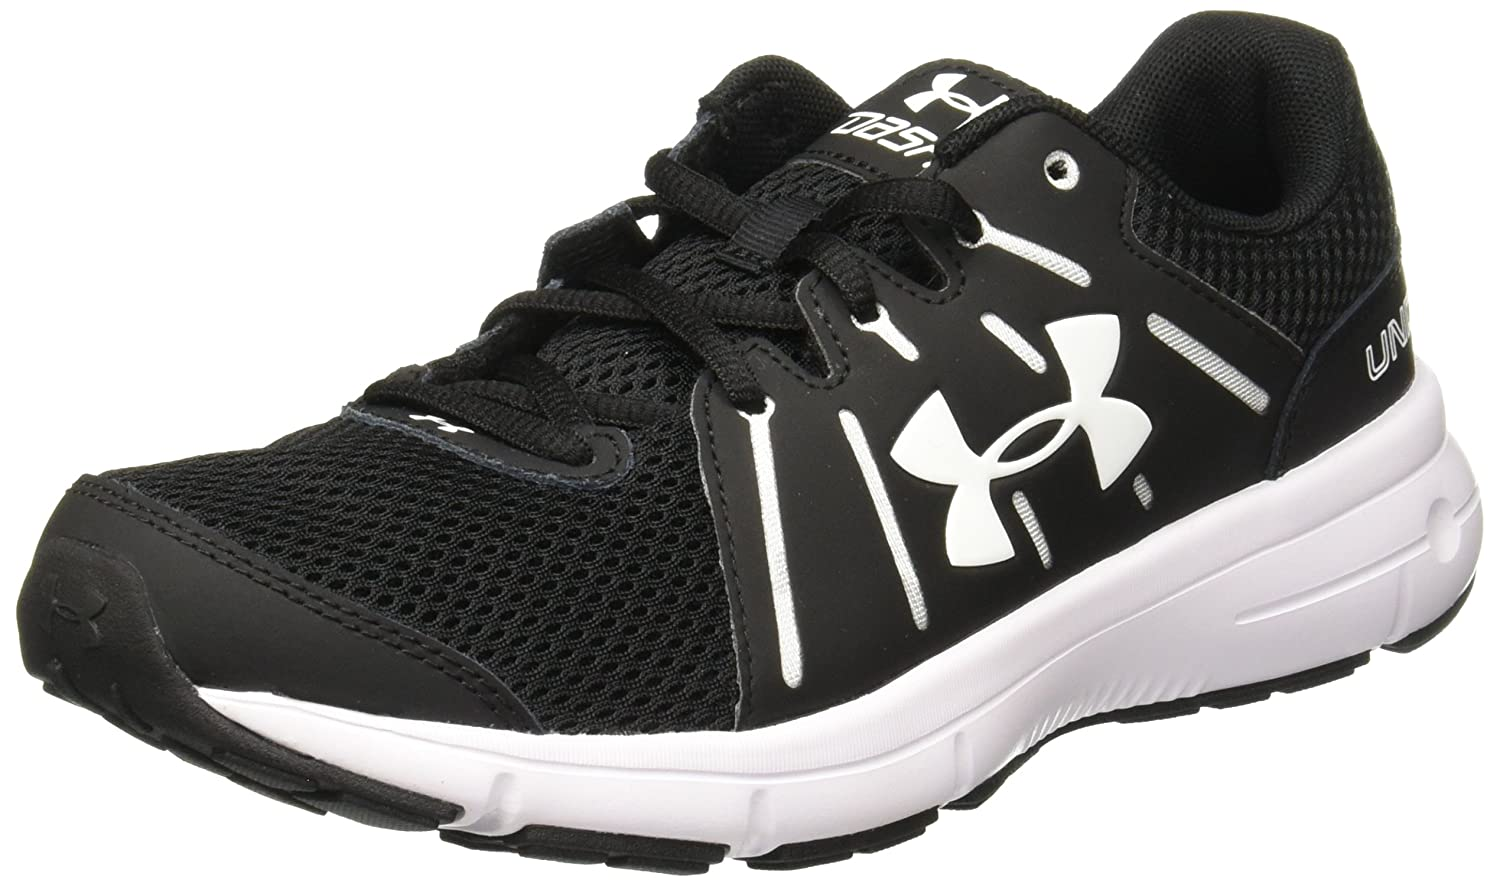 Under Armour Women's Dash 2 Running Shoe B01GPLG1GY 7 B(M) US|Black/White